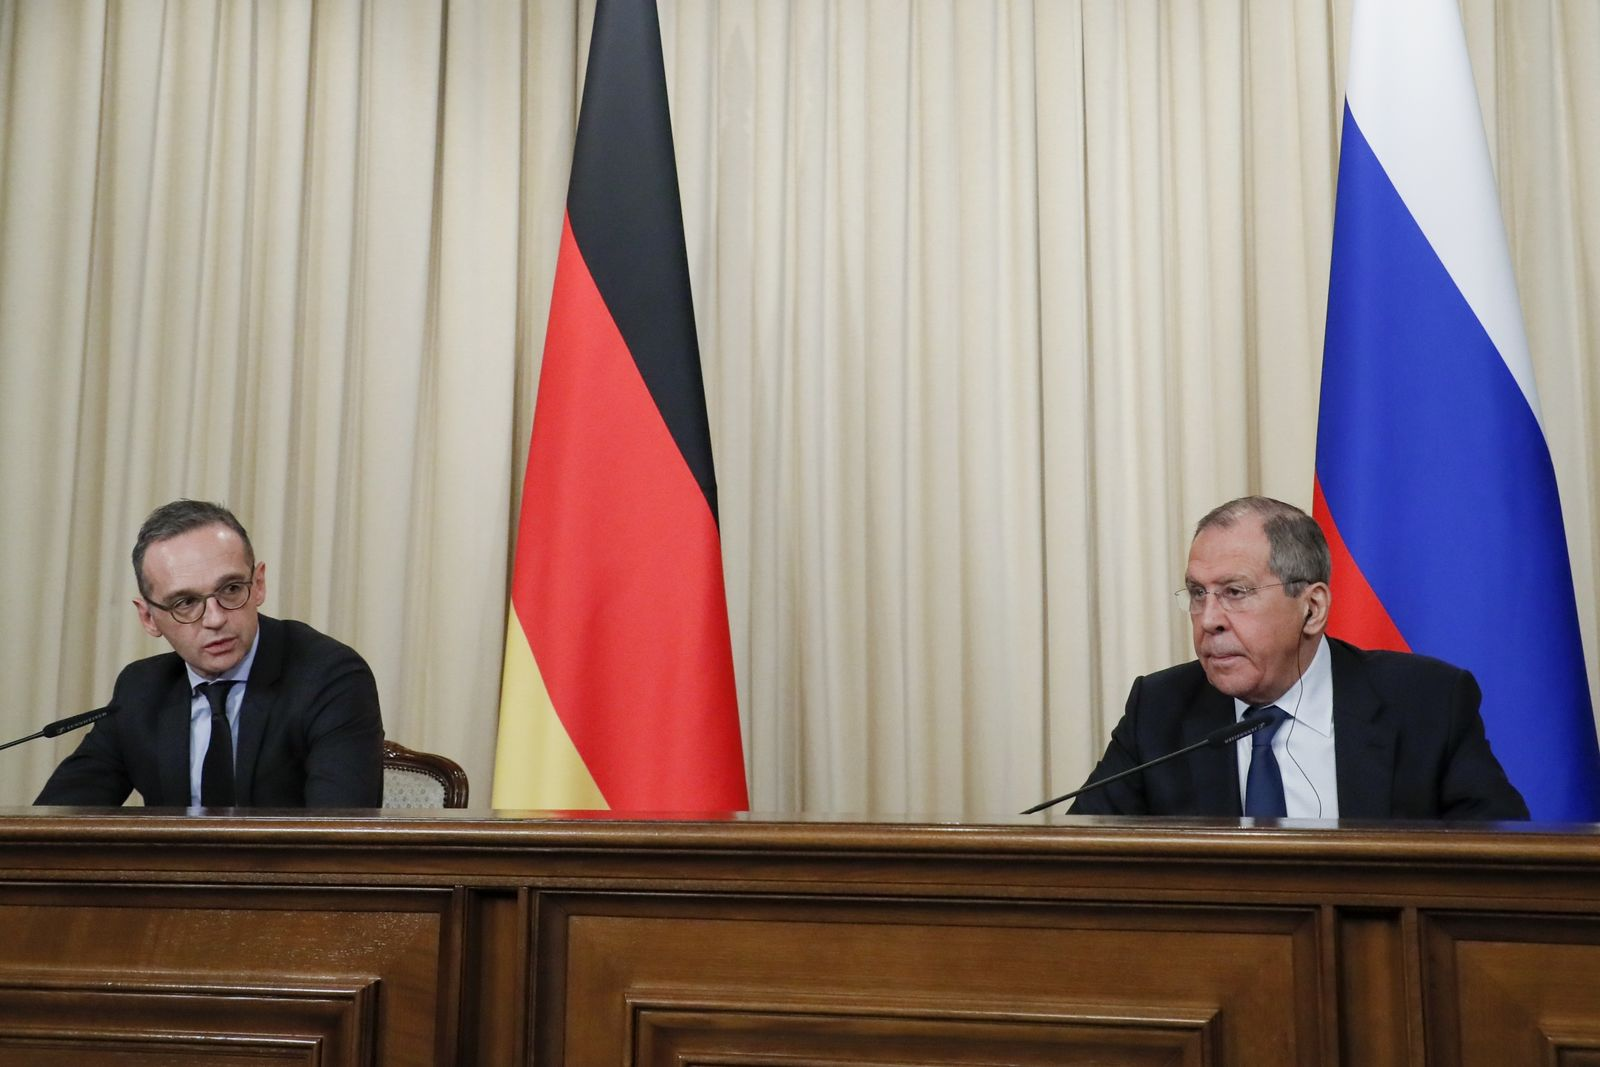 Russian Foreign Minister Sergey Lavrov, right, and Germany's Foreign Minister Heiko Maas attend a joint news conference following their talks in Moscow, Russia, Friday, Jan. 18, 2019. Germany's foreign minister has urged Russia to save a key arms treaty with the U.S. to prevent a new arms race. (AP Photo)